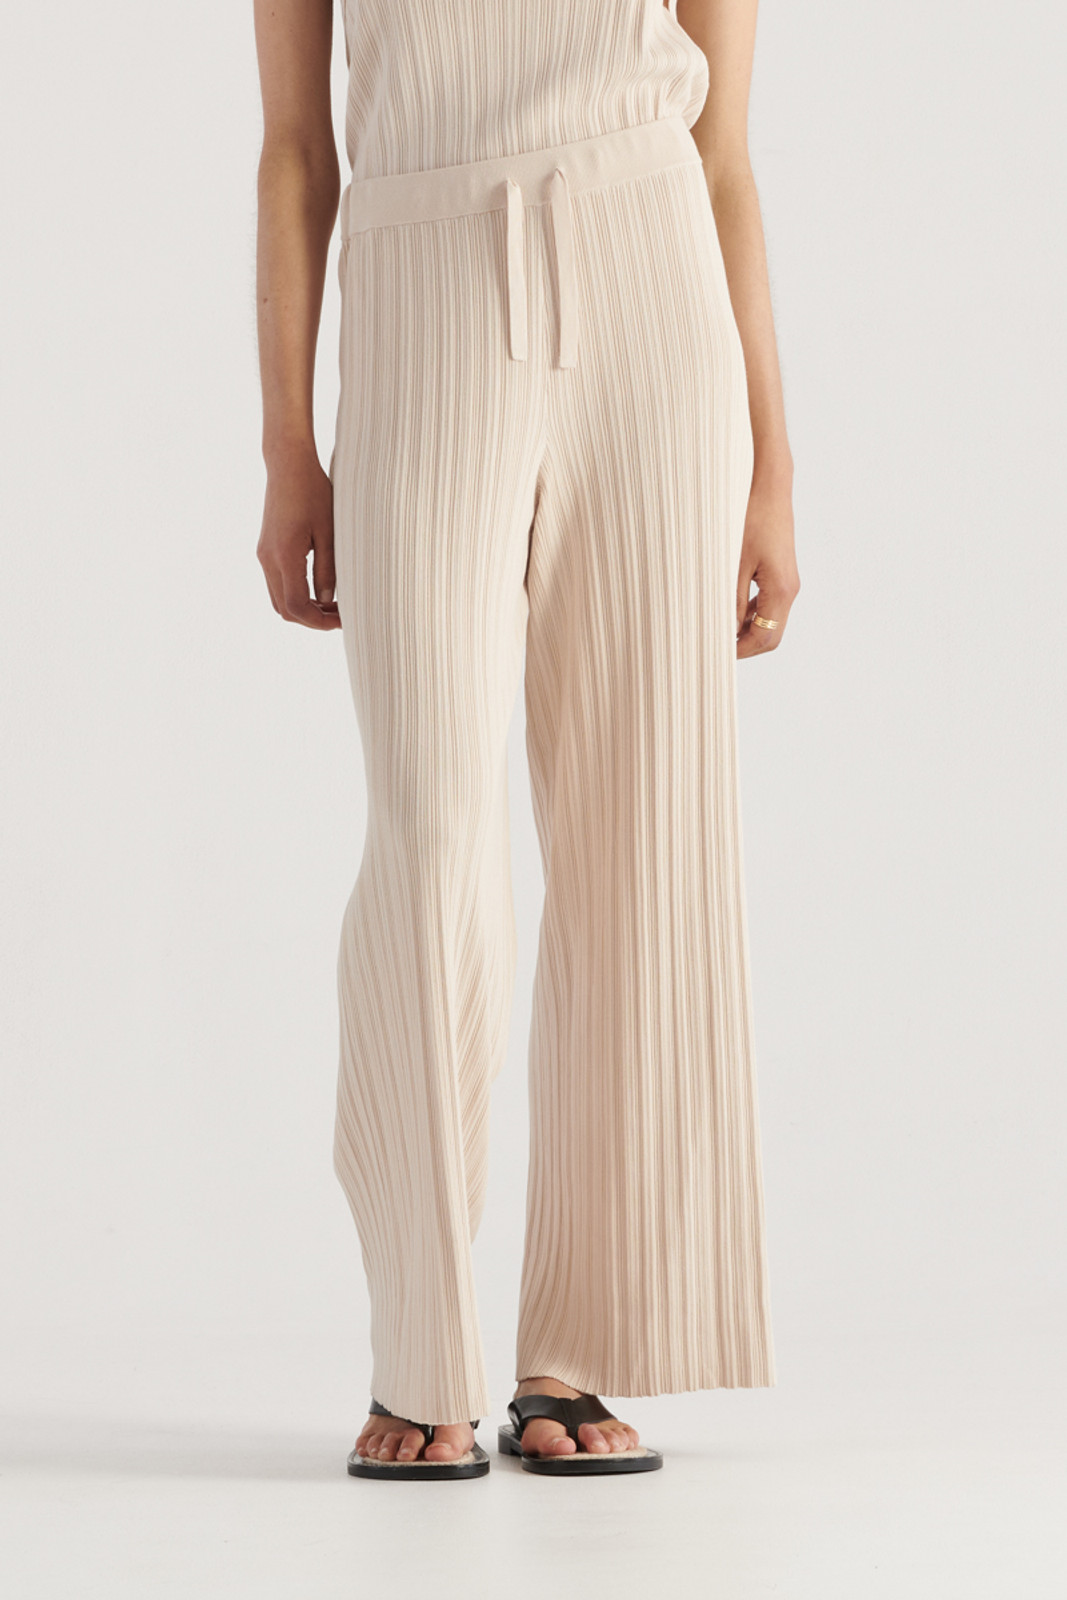 Elka Collective WomensPalma Knit Pant Biscuit  0